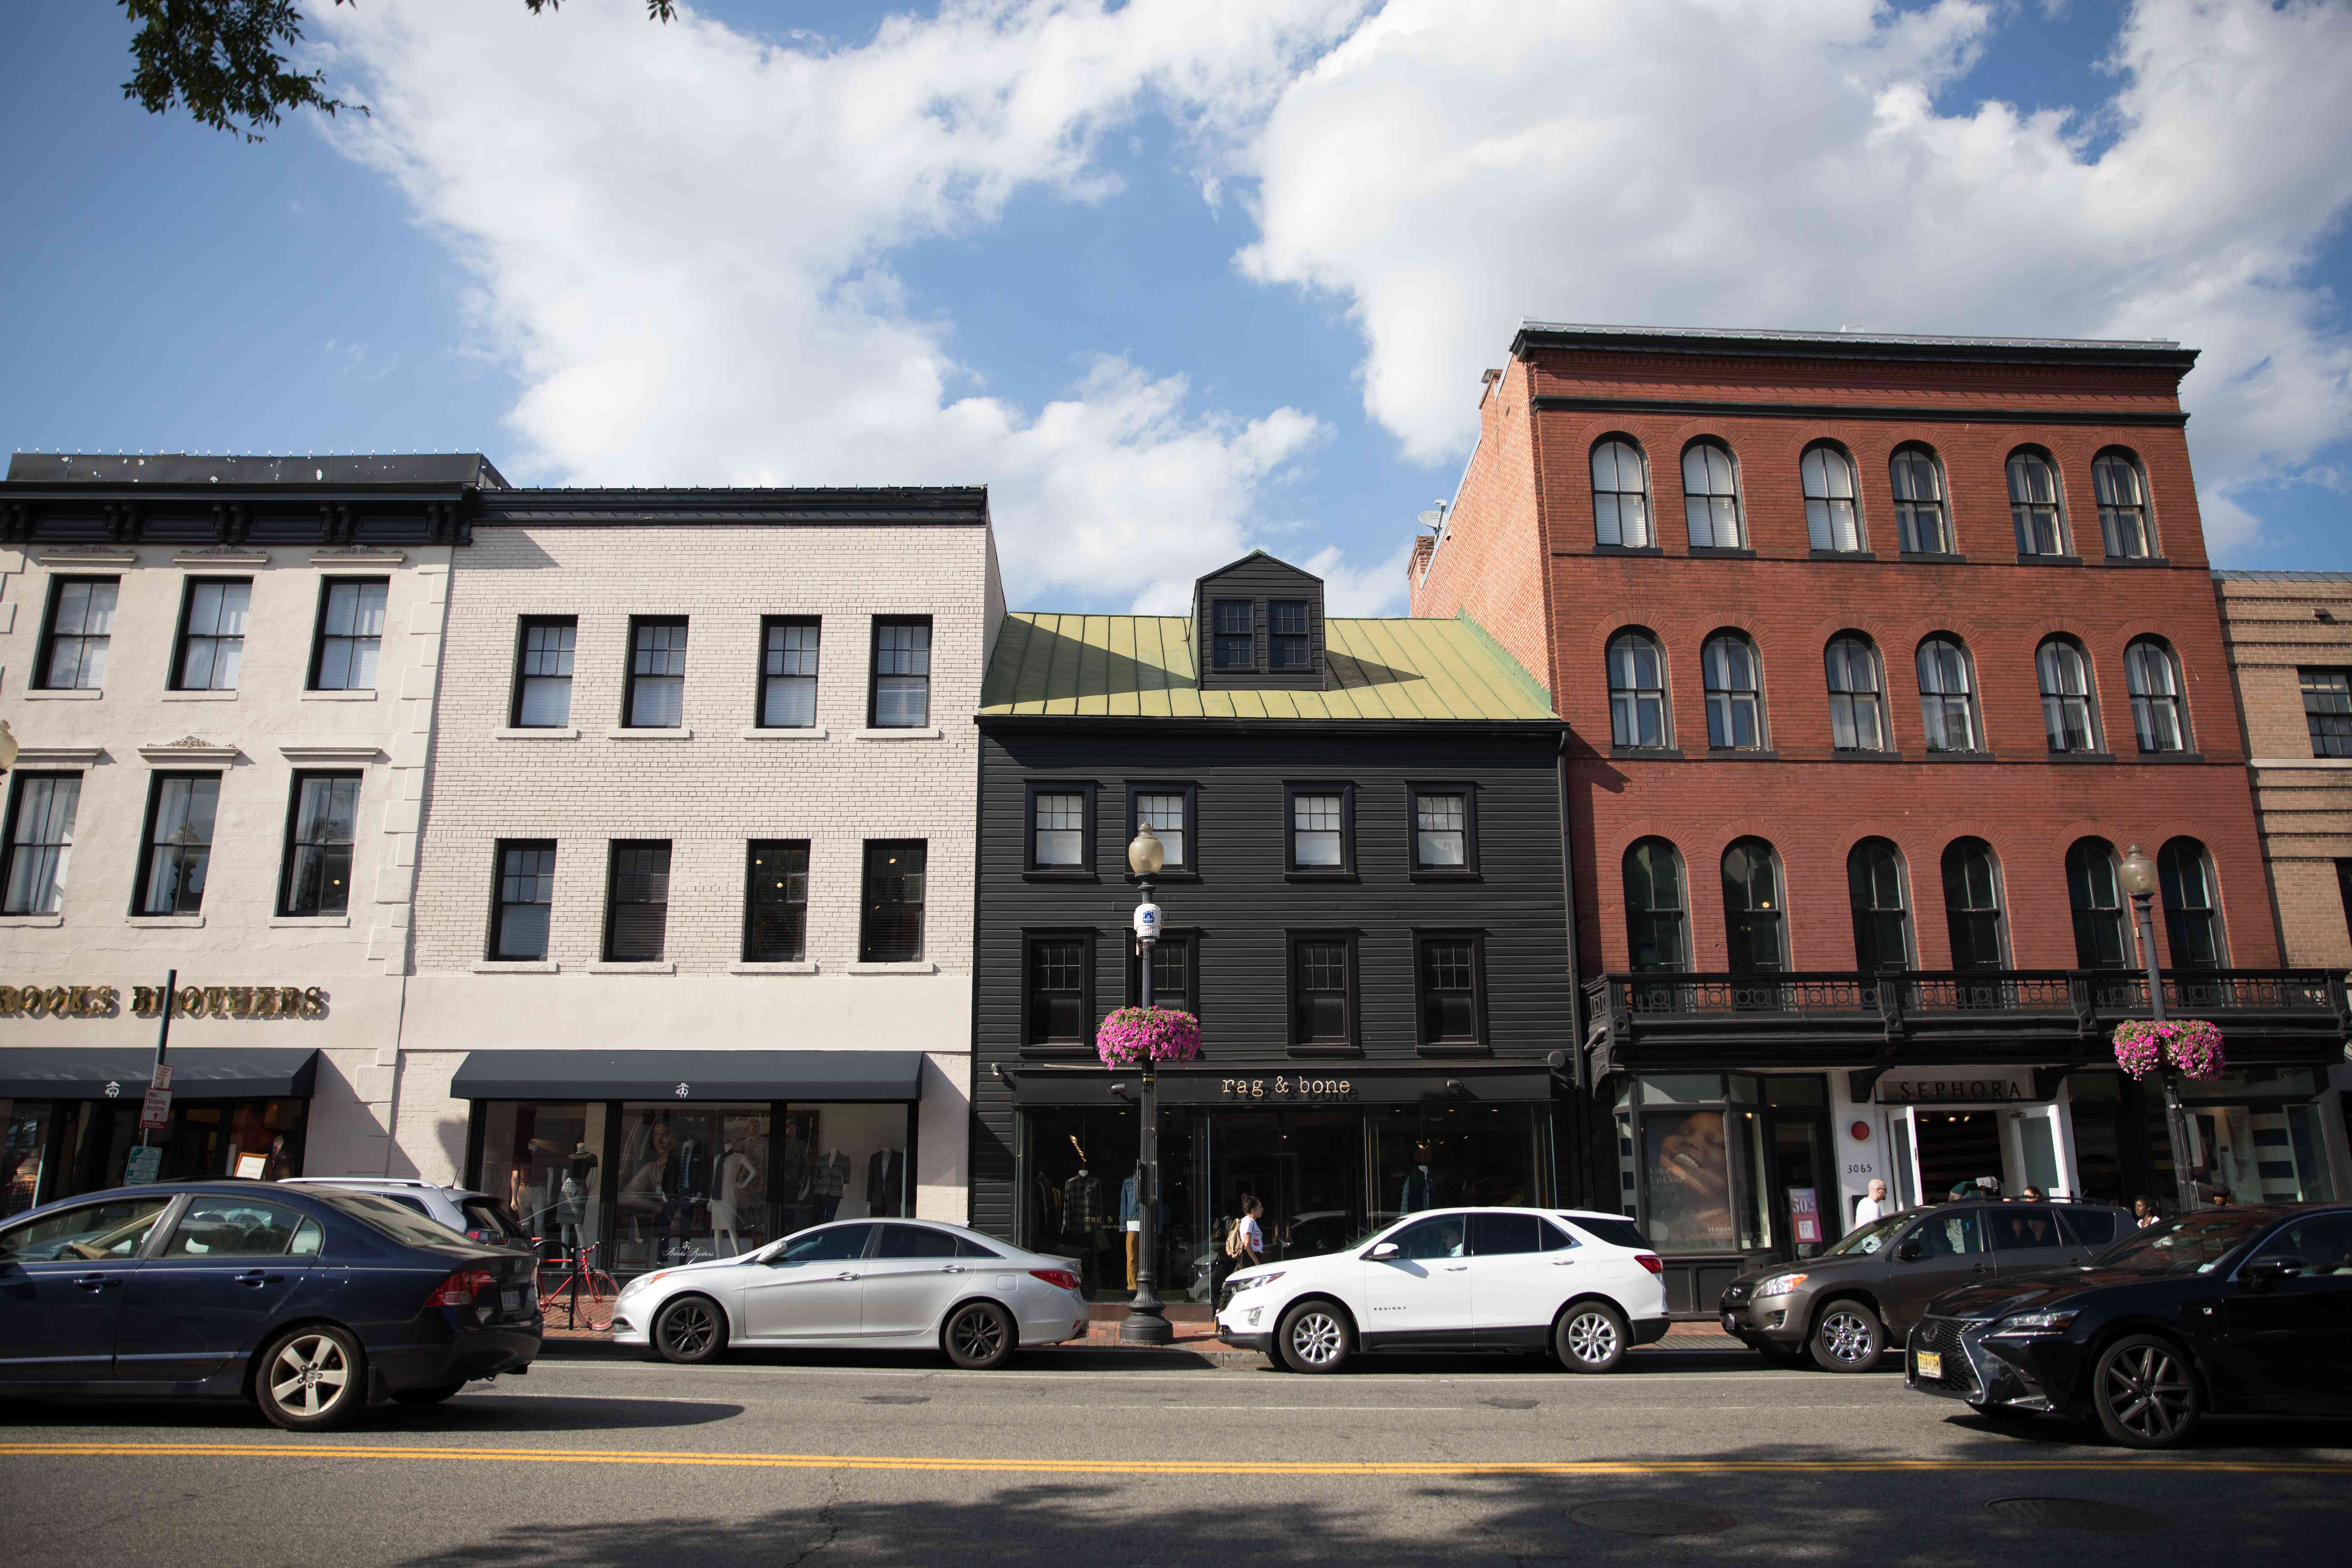 Boutique shops in Georgetown